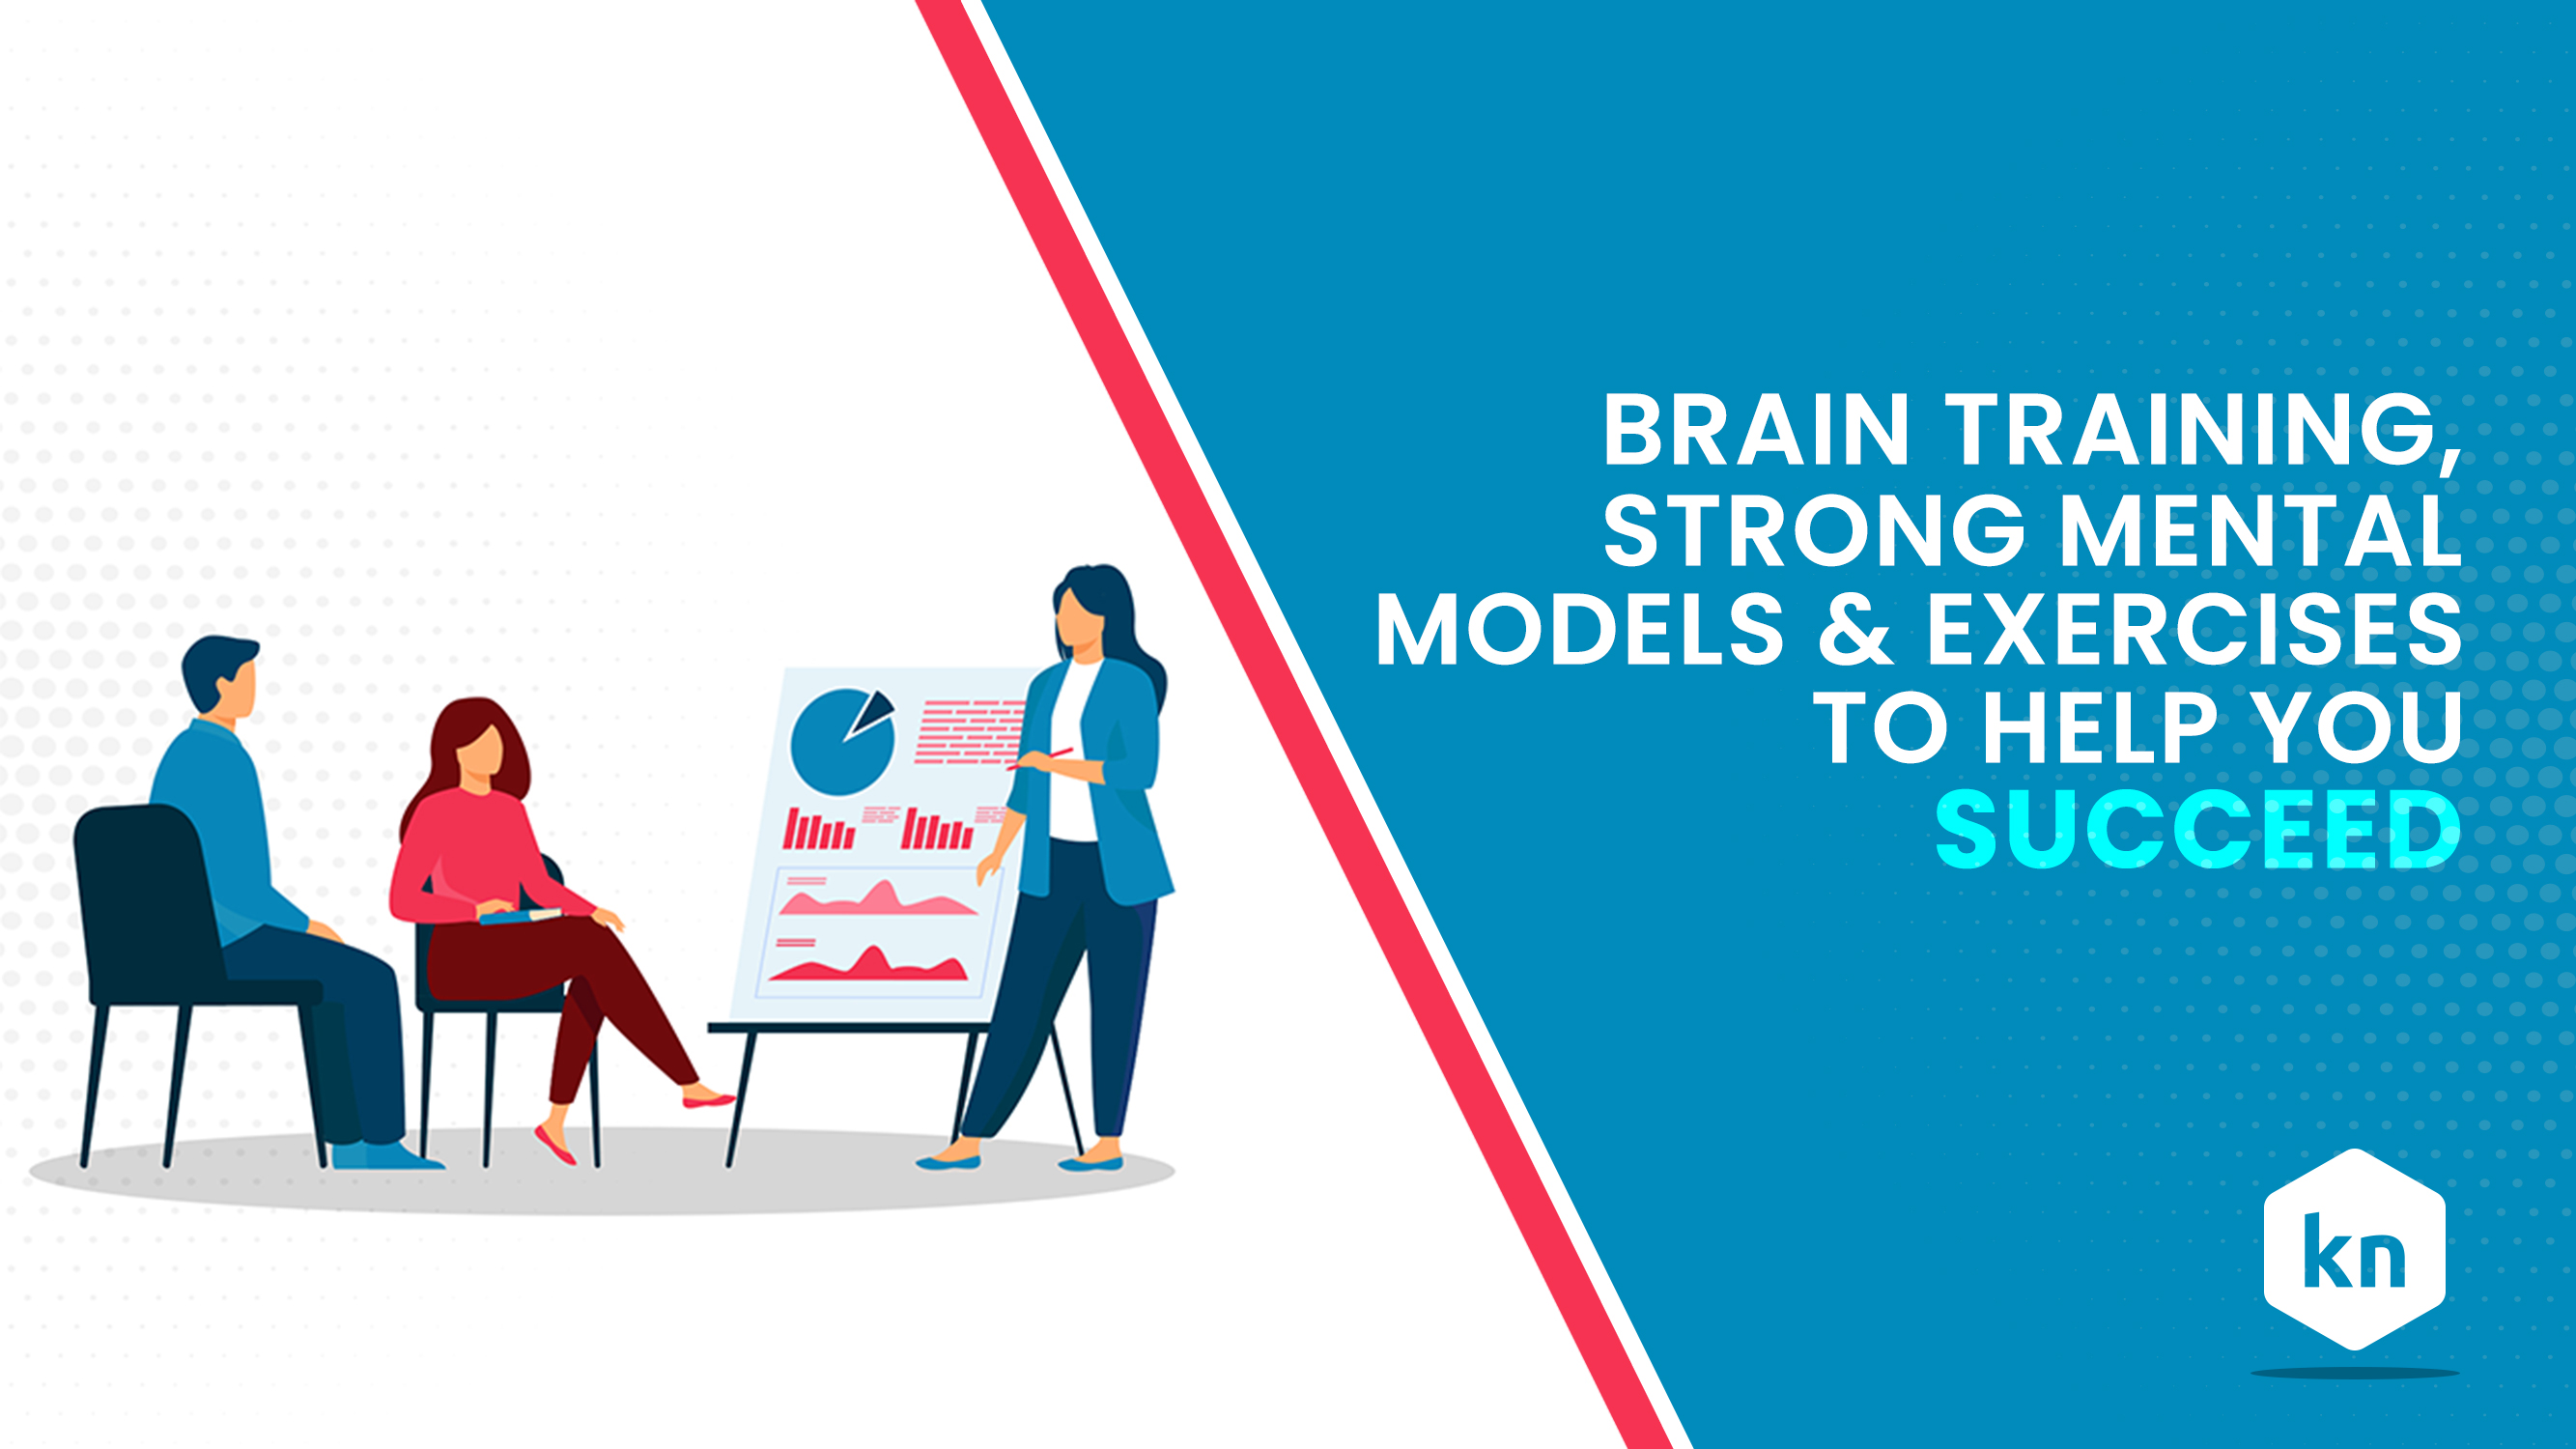 Brain Training: Strong Mental Models & Exercises To Help You Succeed